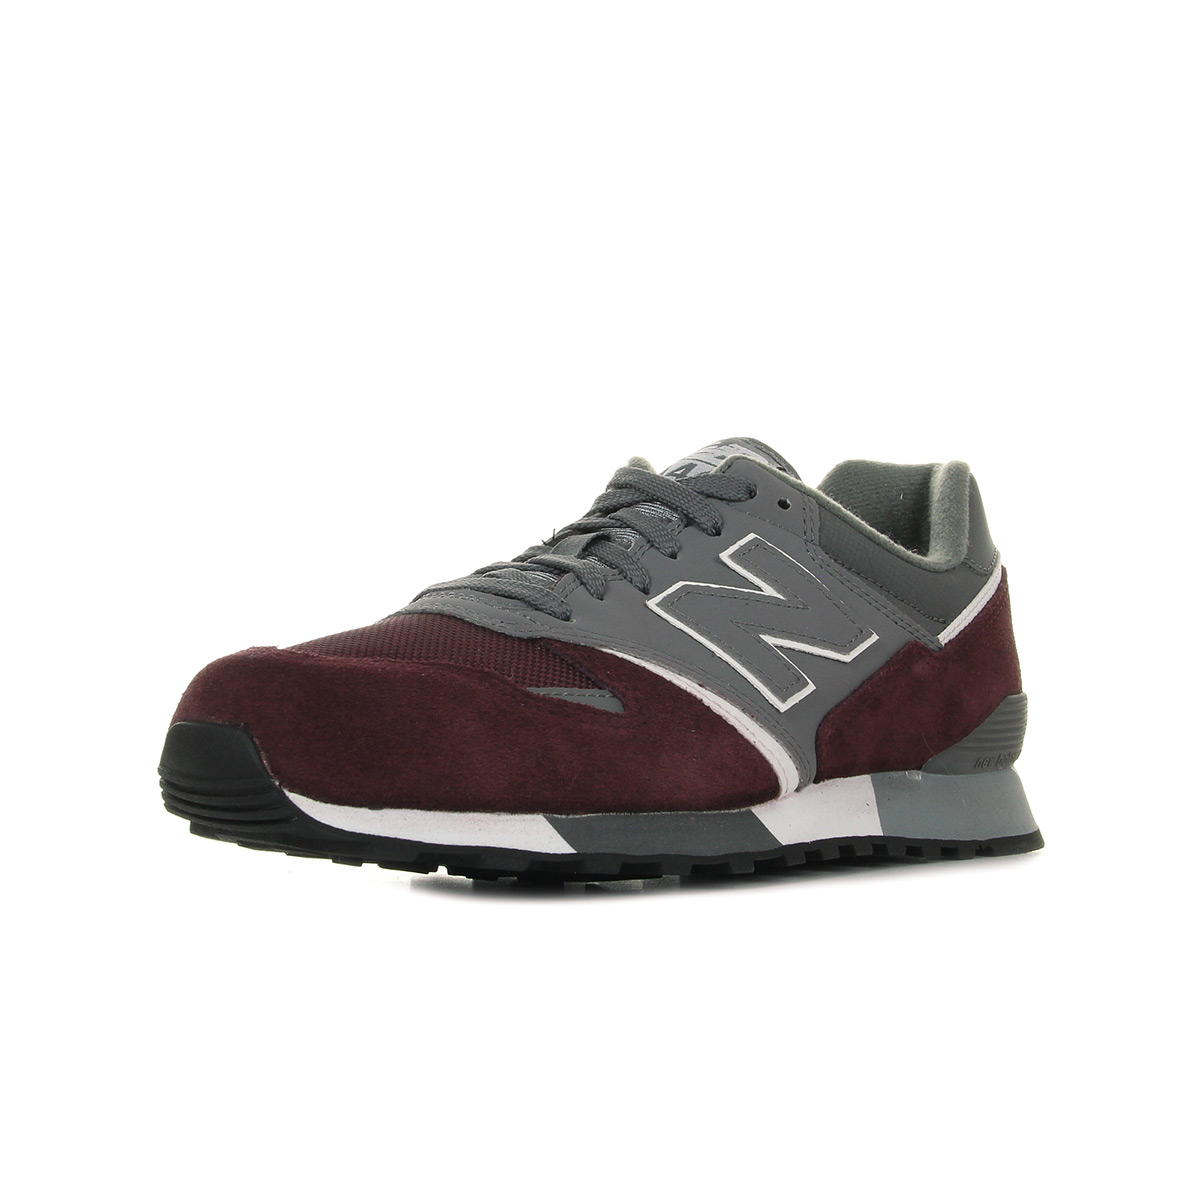 Chaussures Baskets New Balance homme U446 BGW taille Bordeaux Synth tique